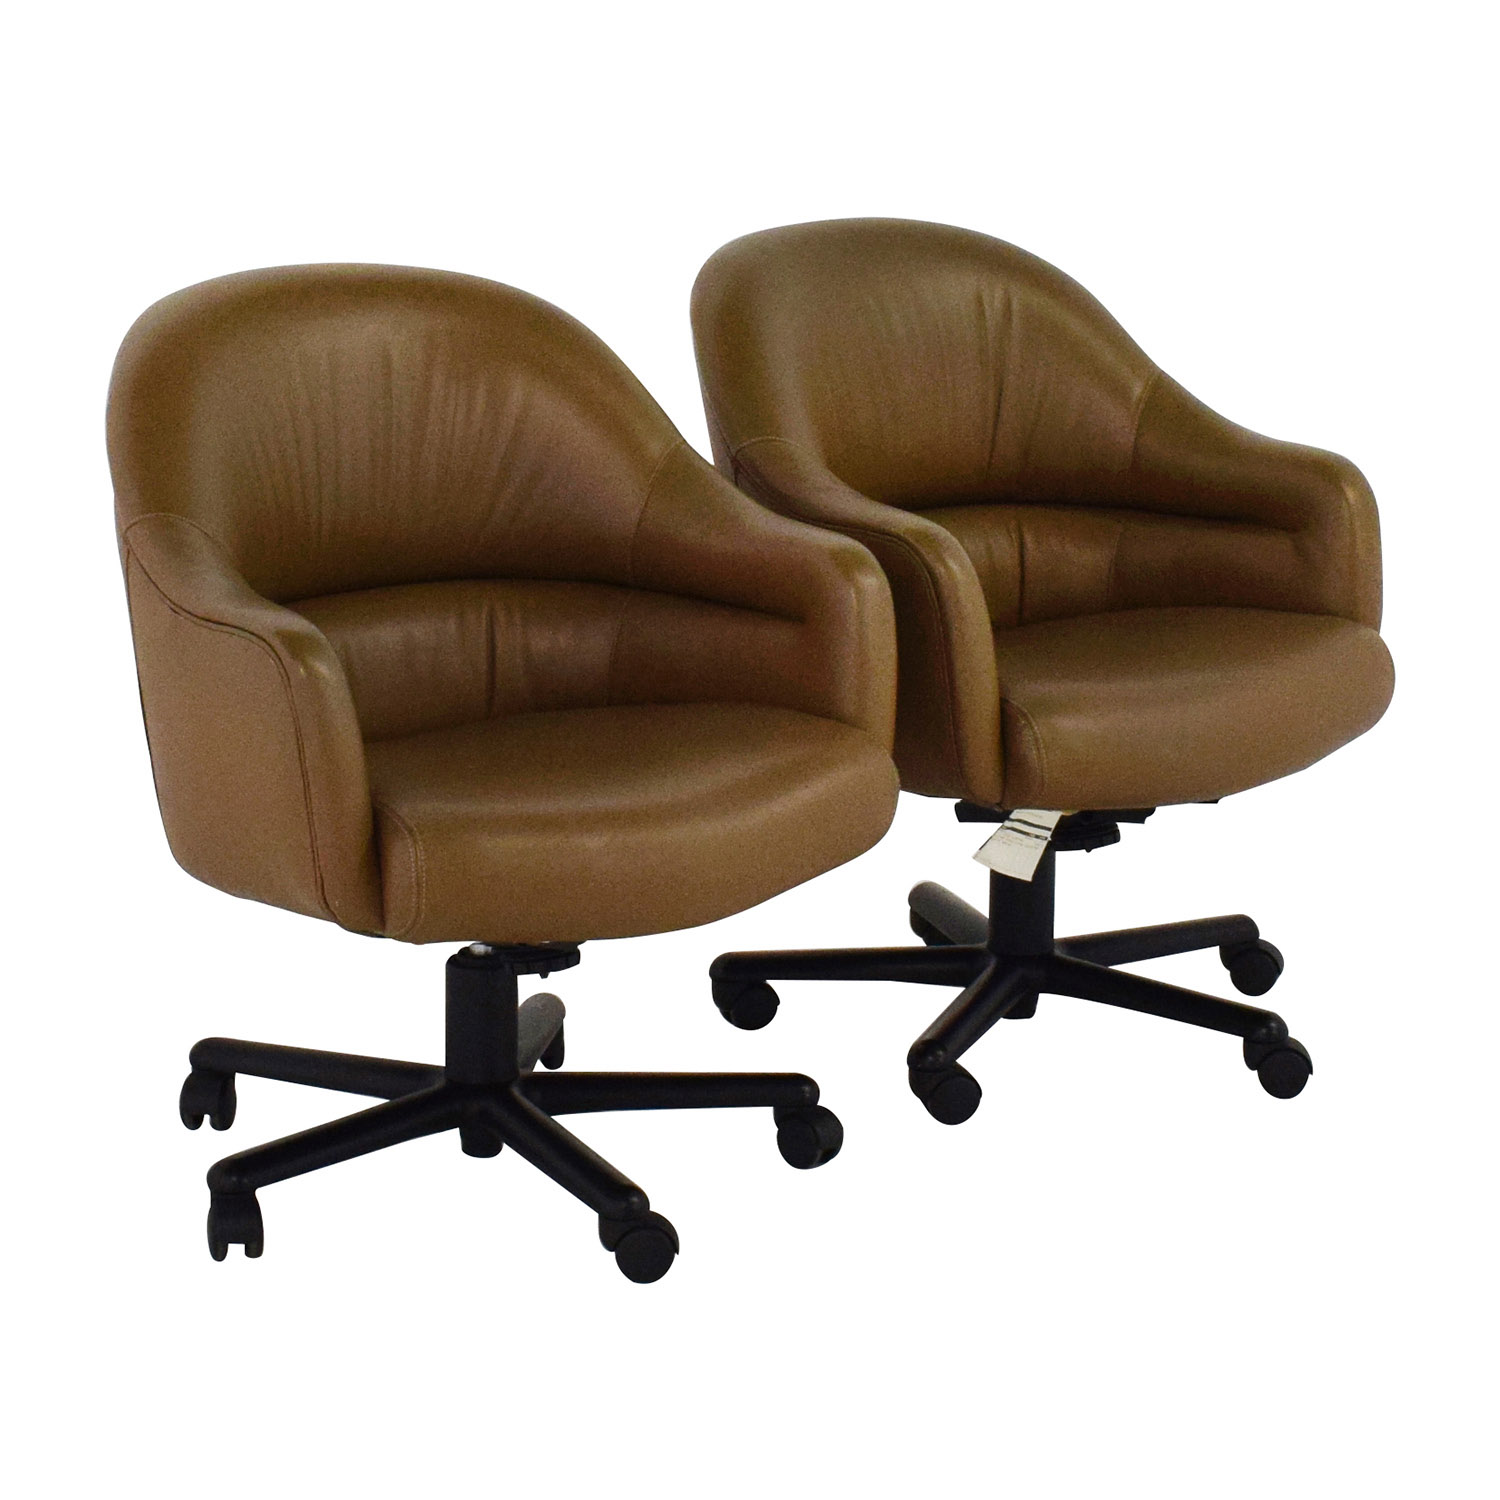 90% OFF Pair of Brown Leather fice Chairs Chairs